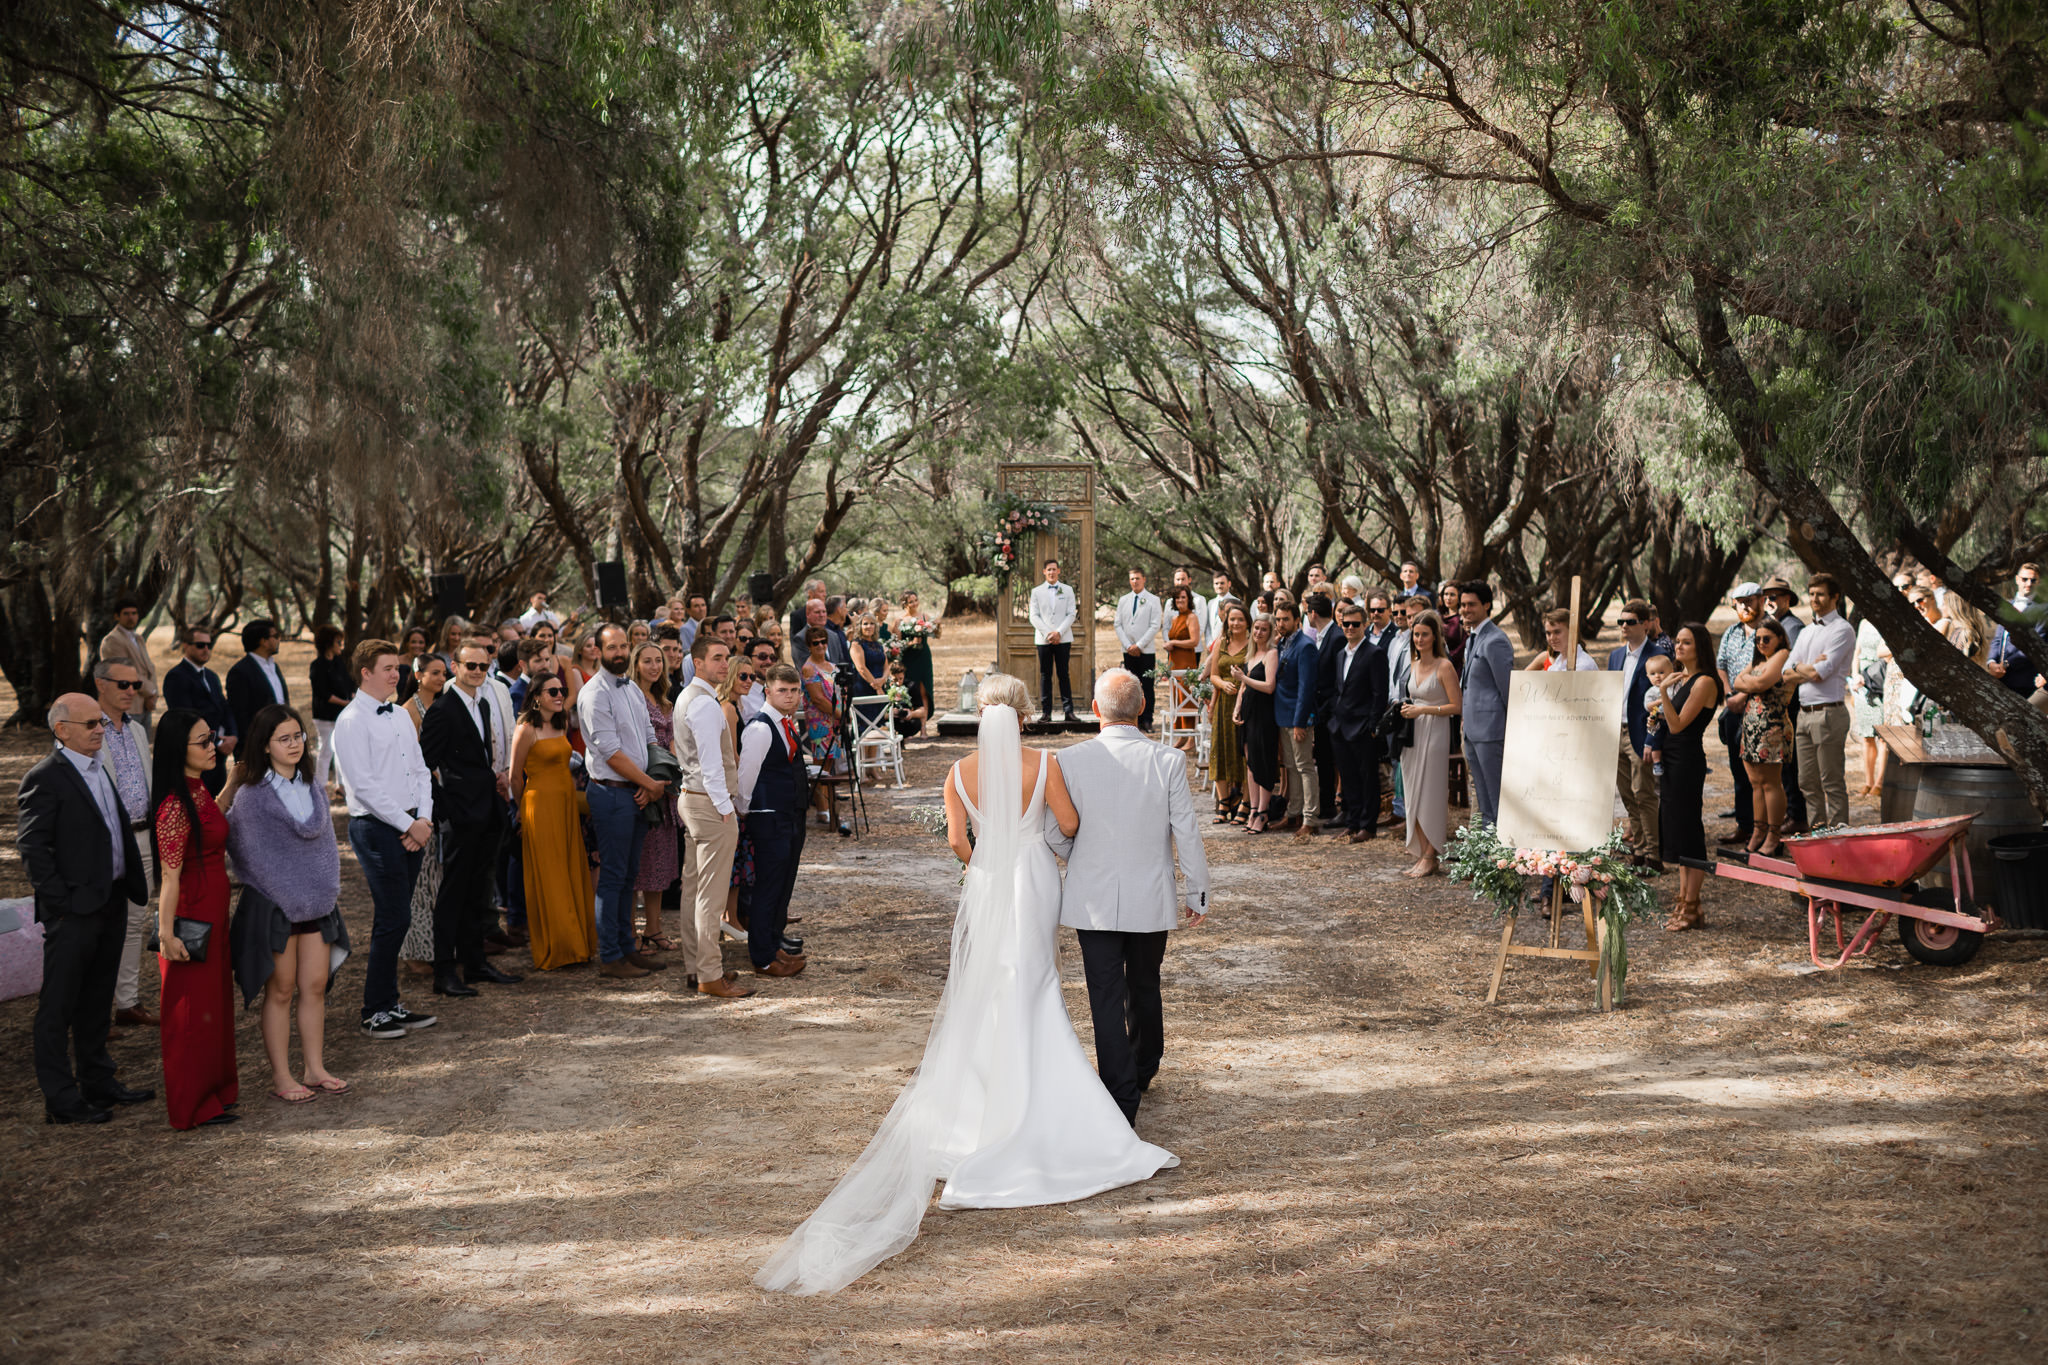 Bride and father walking down aisle at wedding in peppermint trees at Solitaire Homestead while groom and wedding guests look on